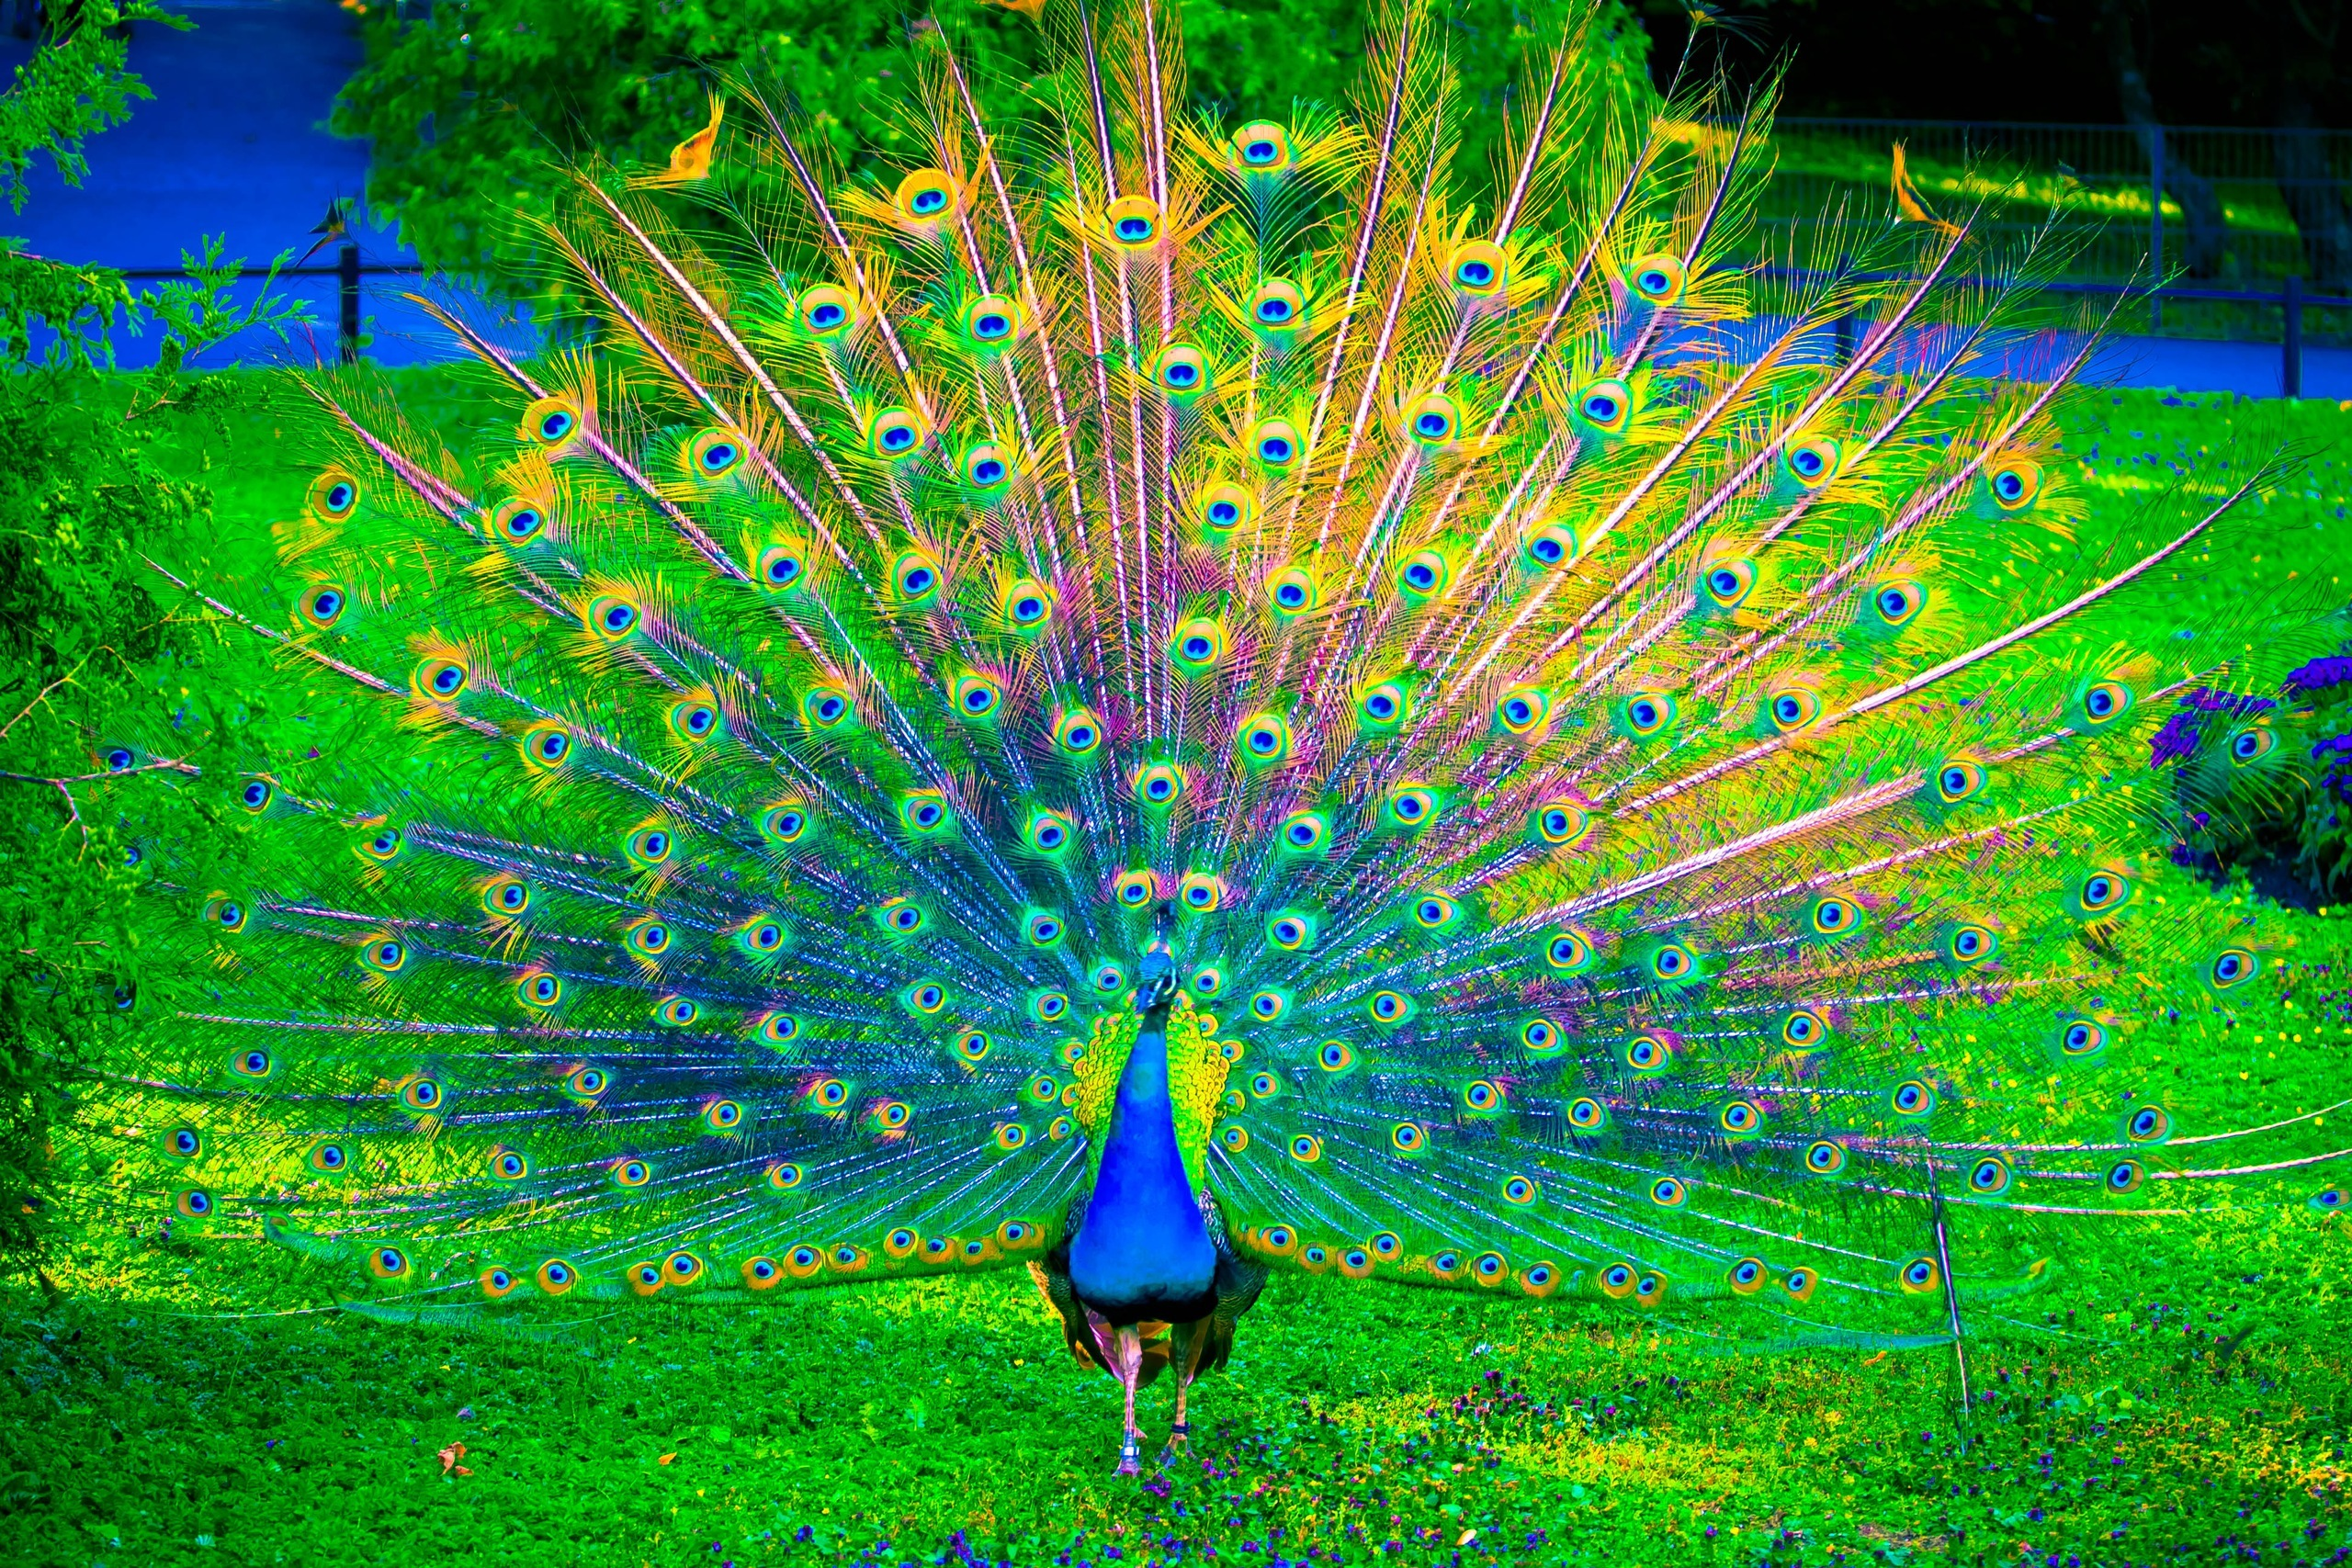 peacock hd wallpaper background image 2560x1707 id 746424